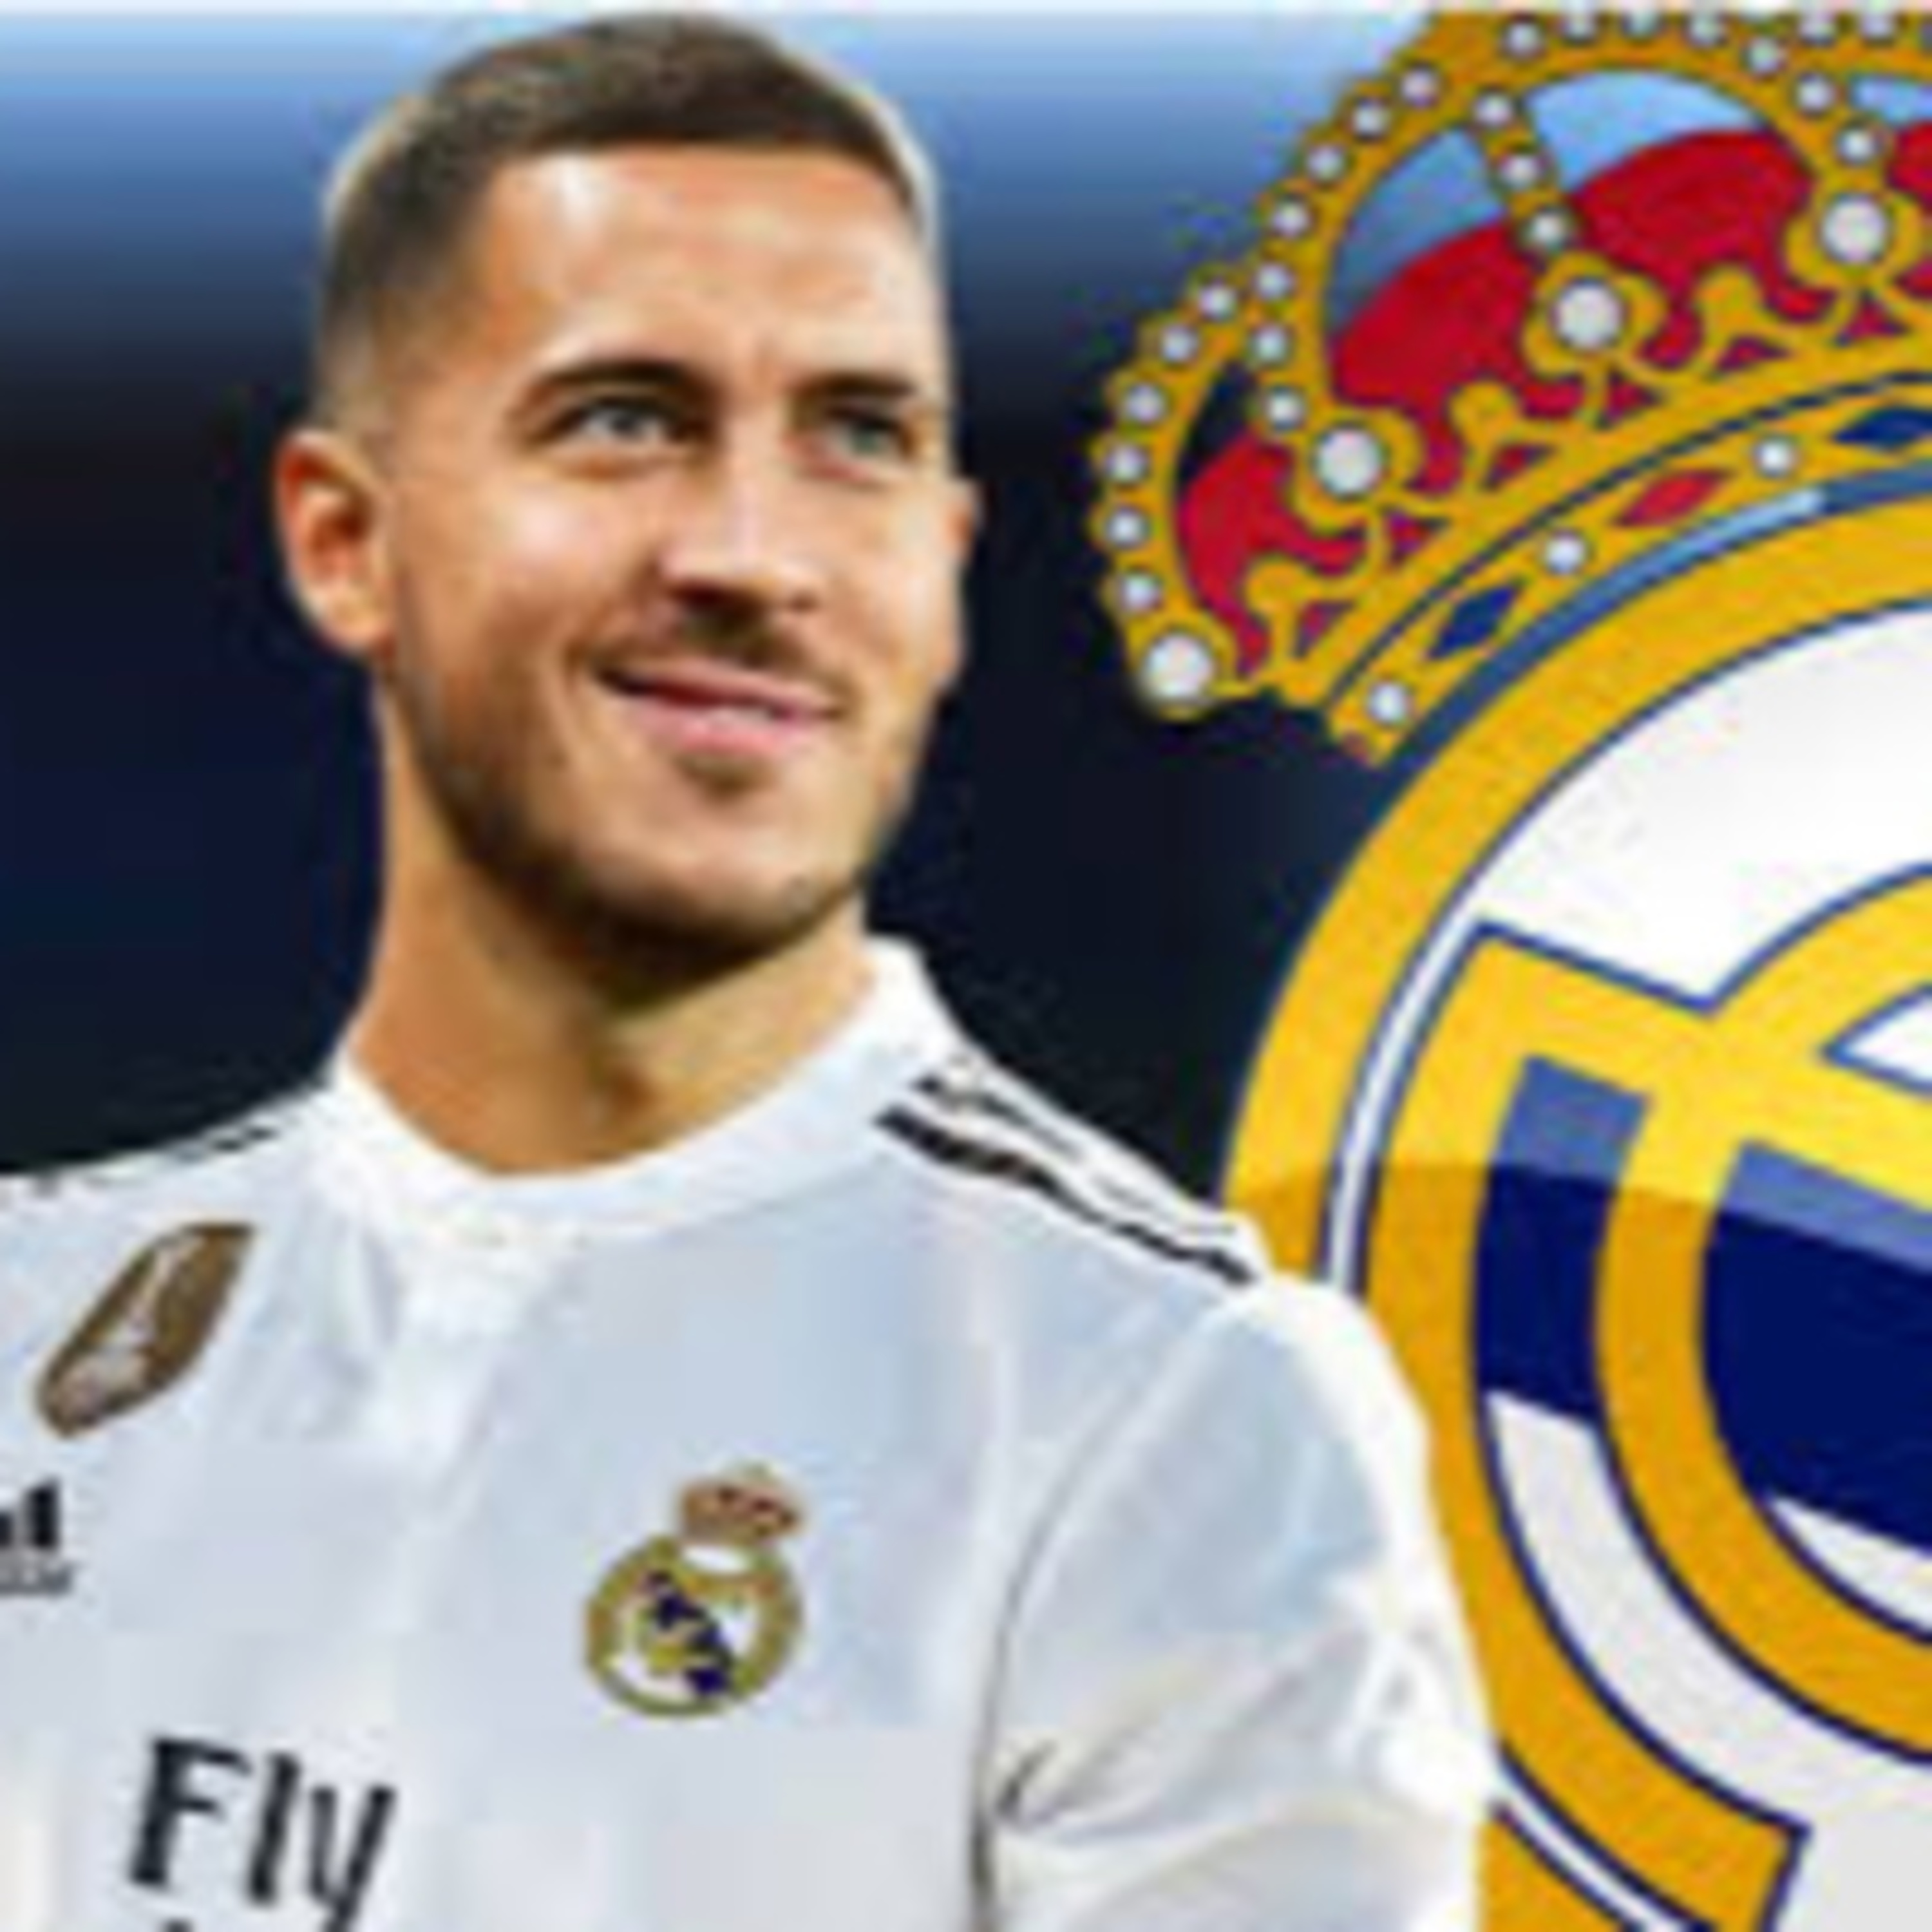 Jovic signs and becomes 6th most expensive player in club history Hazard deal almost complete both expected to be presented on friday 14th in Madrid Mendy deal hold up as medical not yet complete